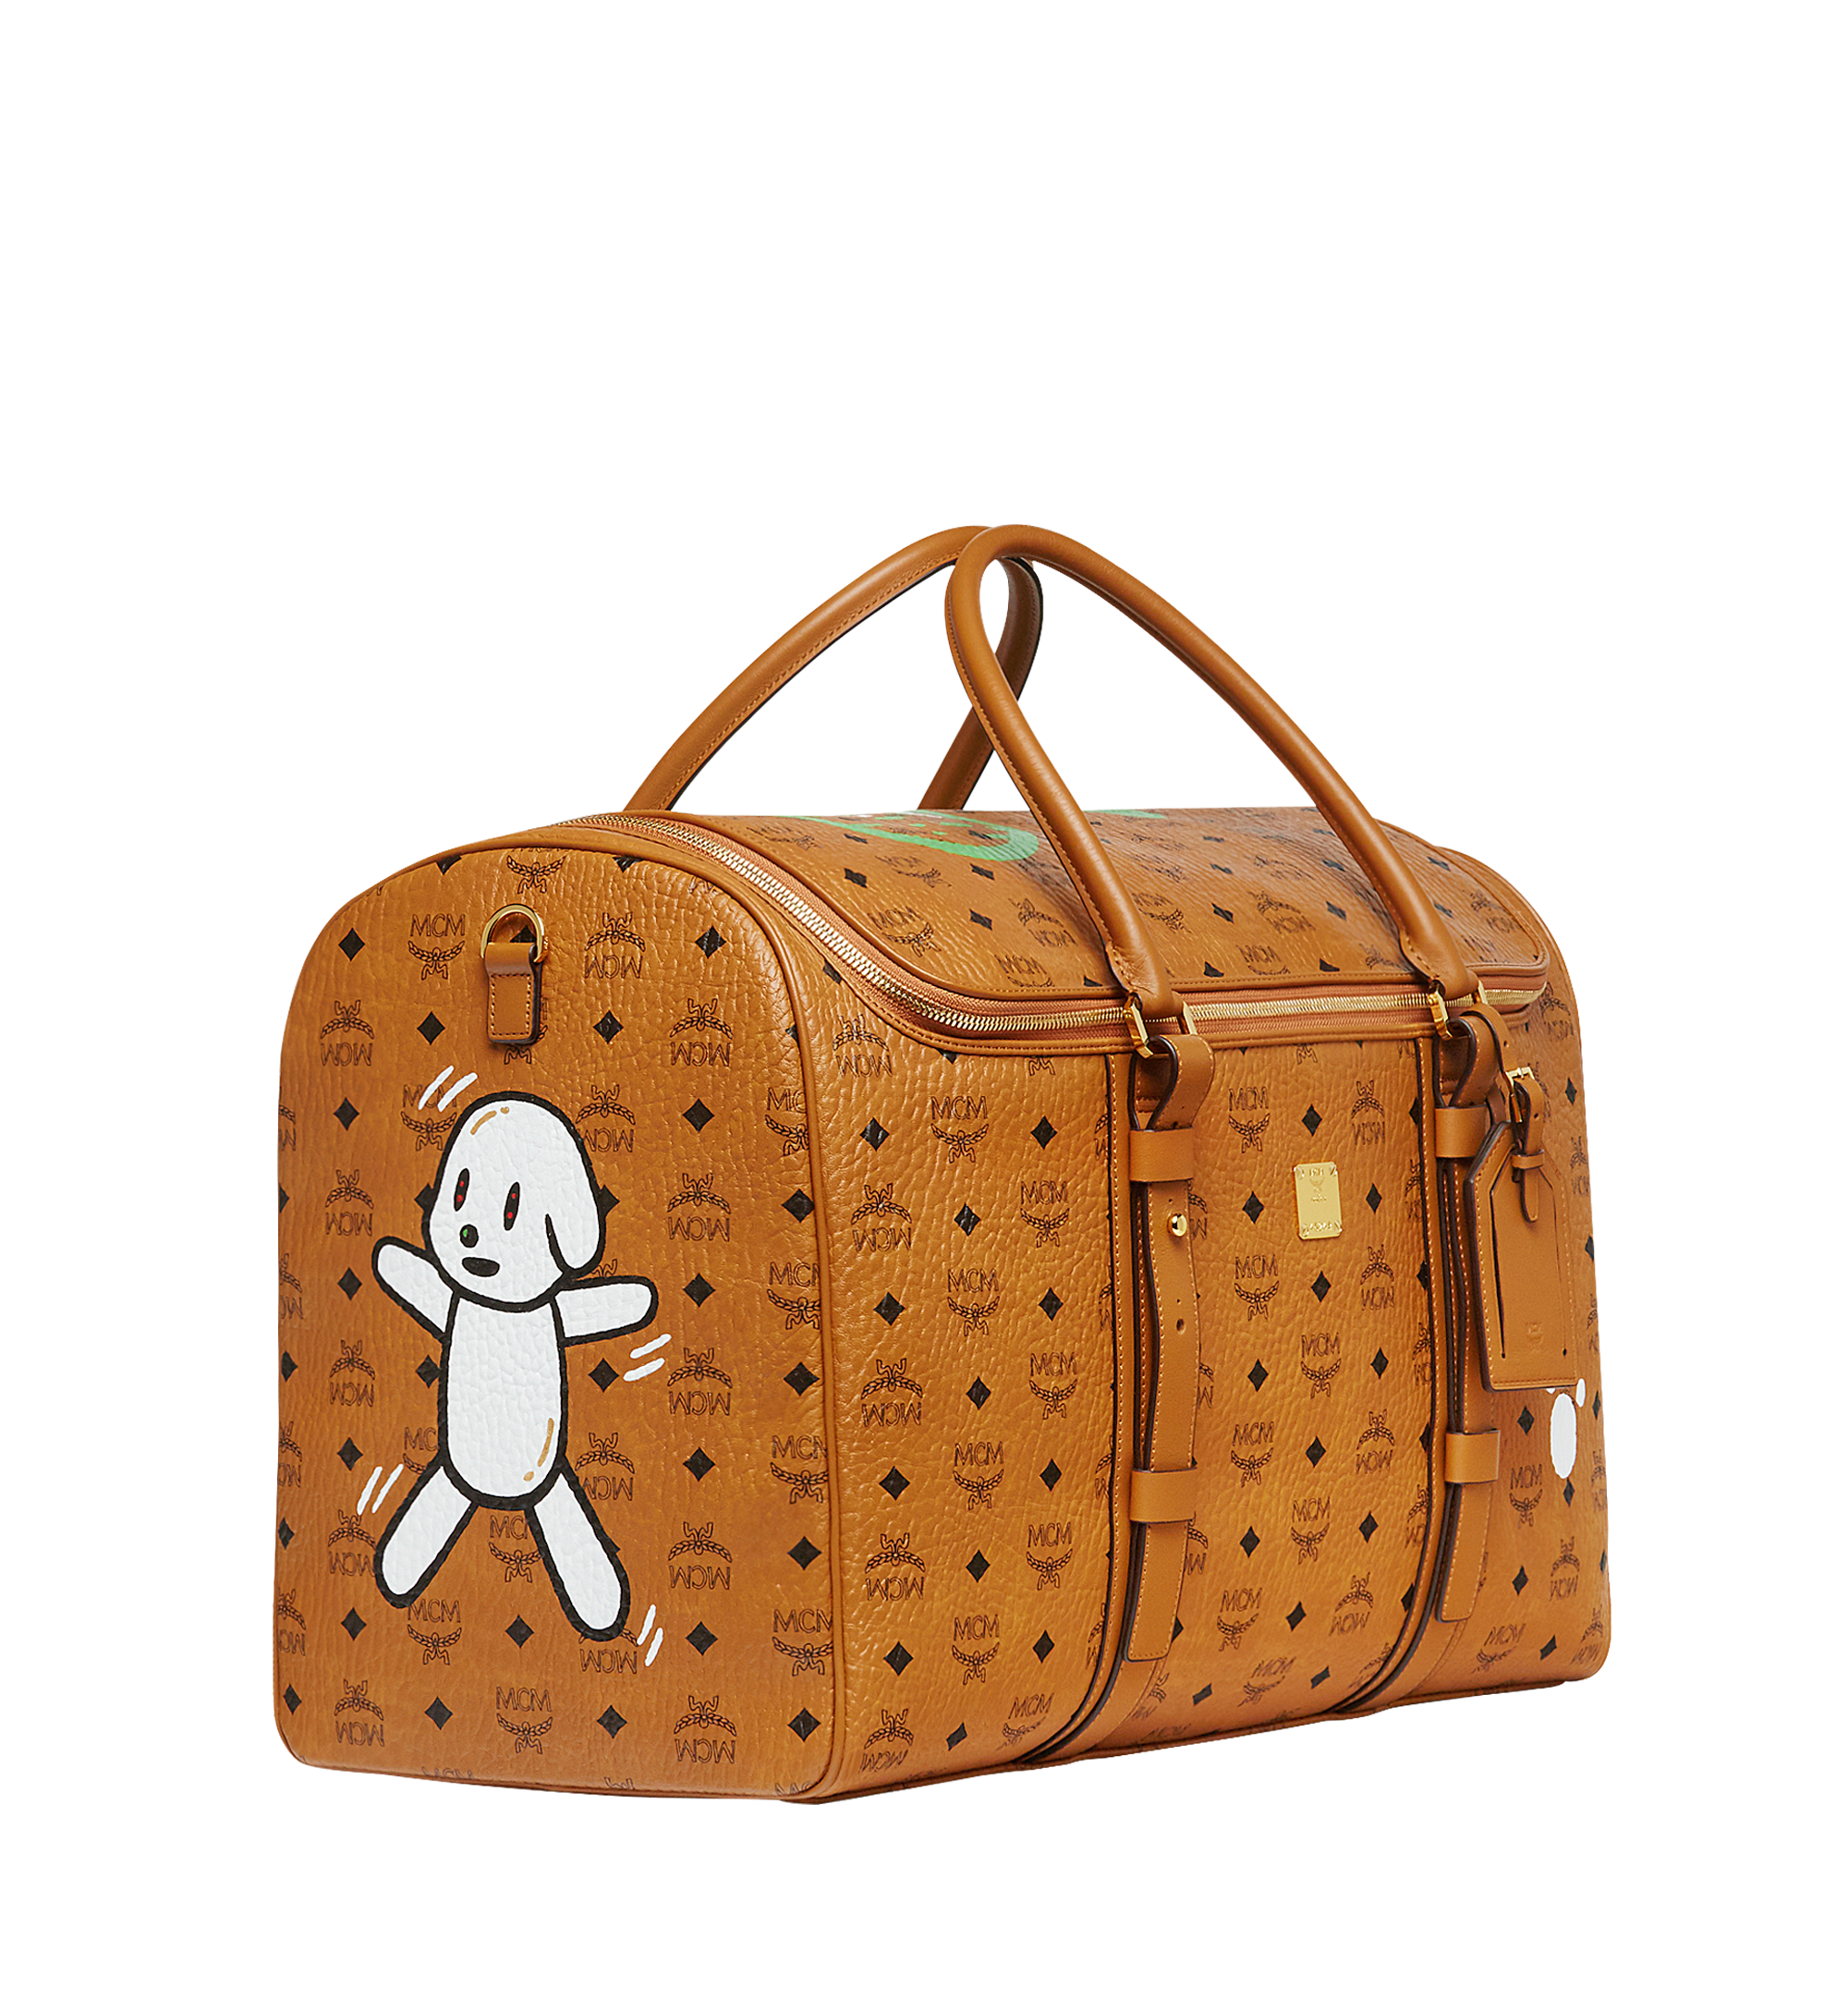 MCM_X_Eddie_Kang_Auction_Piece___Dog_Carrier_HQ_2.png